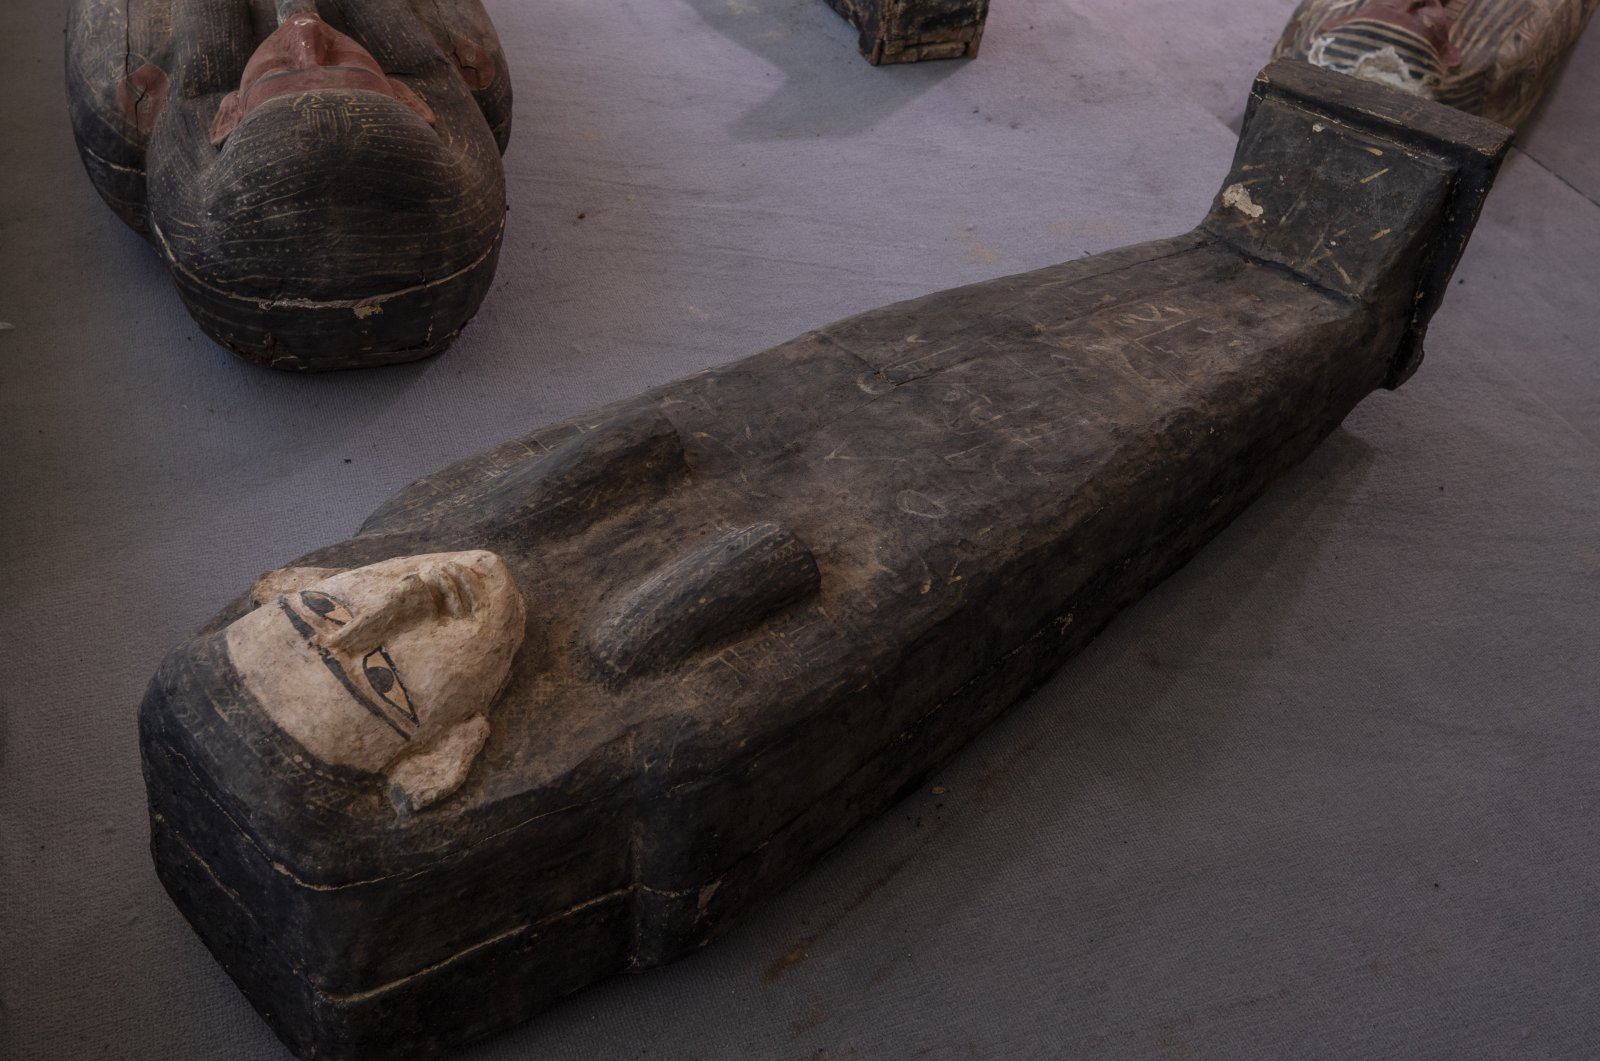 Ancient sarcophagus more than 2,500 years old discovered in a vast necropolis in Saqqara, Giza, Egypt, Nov. 14, 2020. (AP Photo)